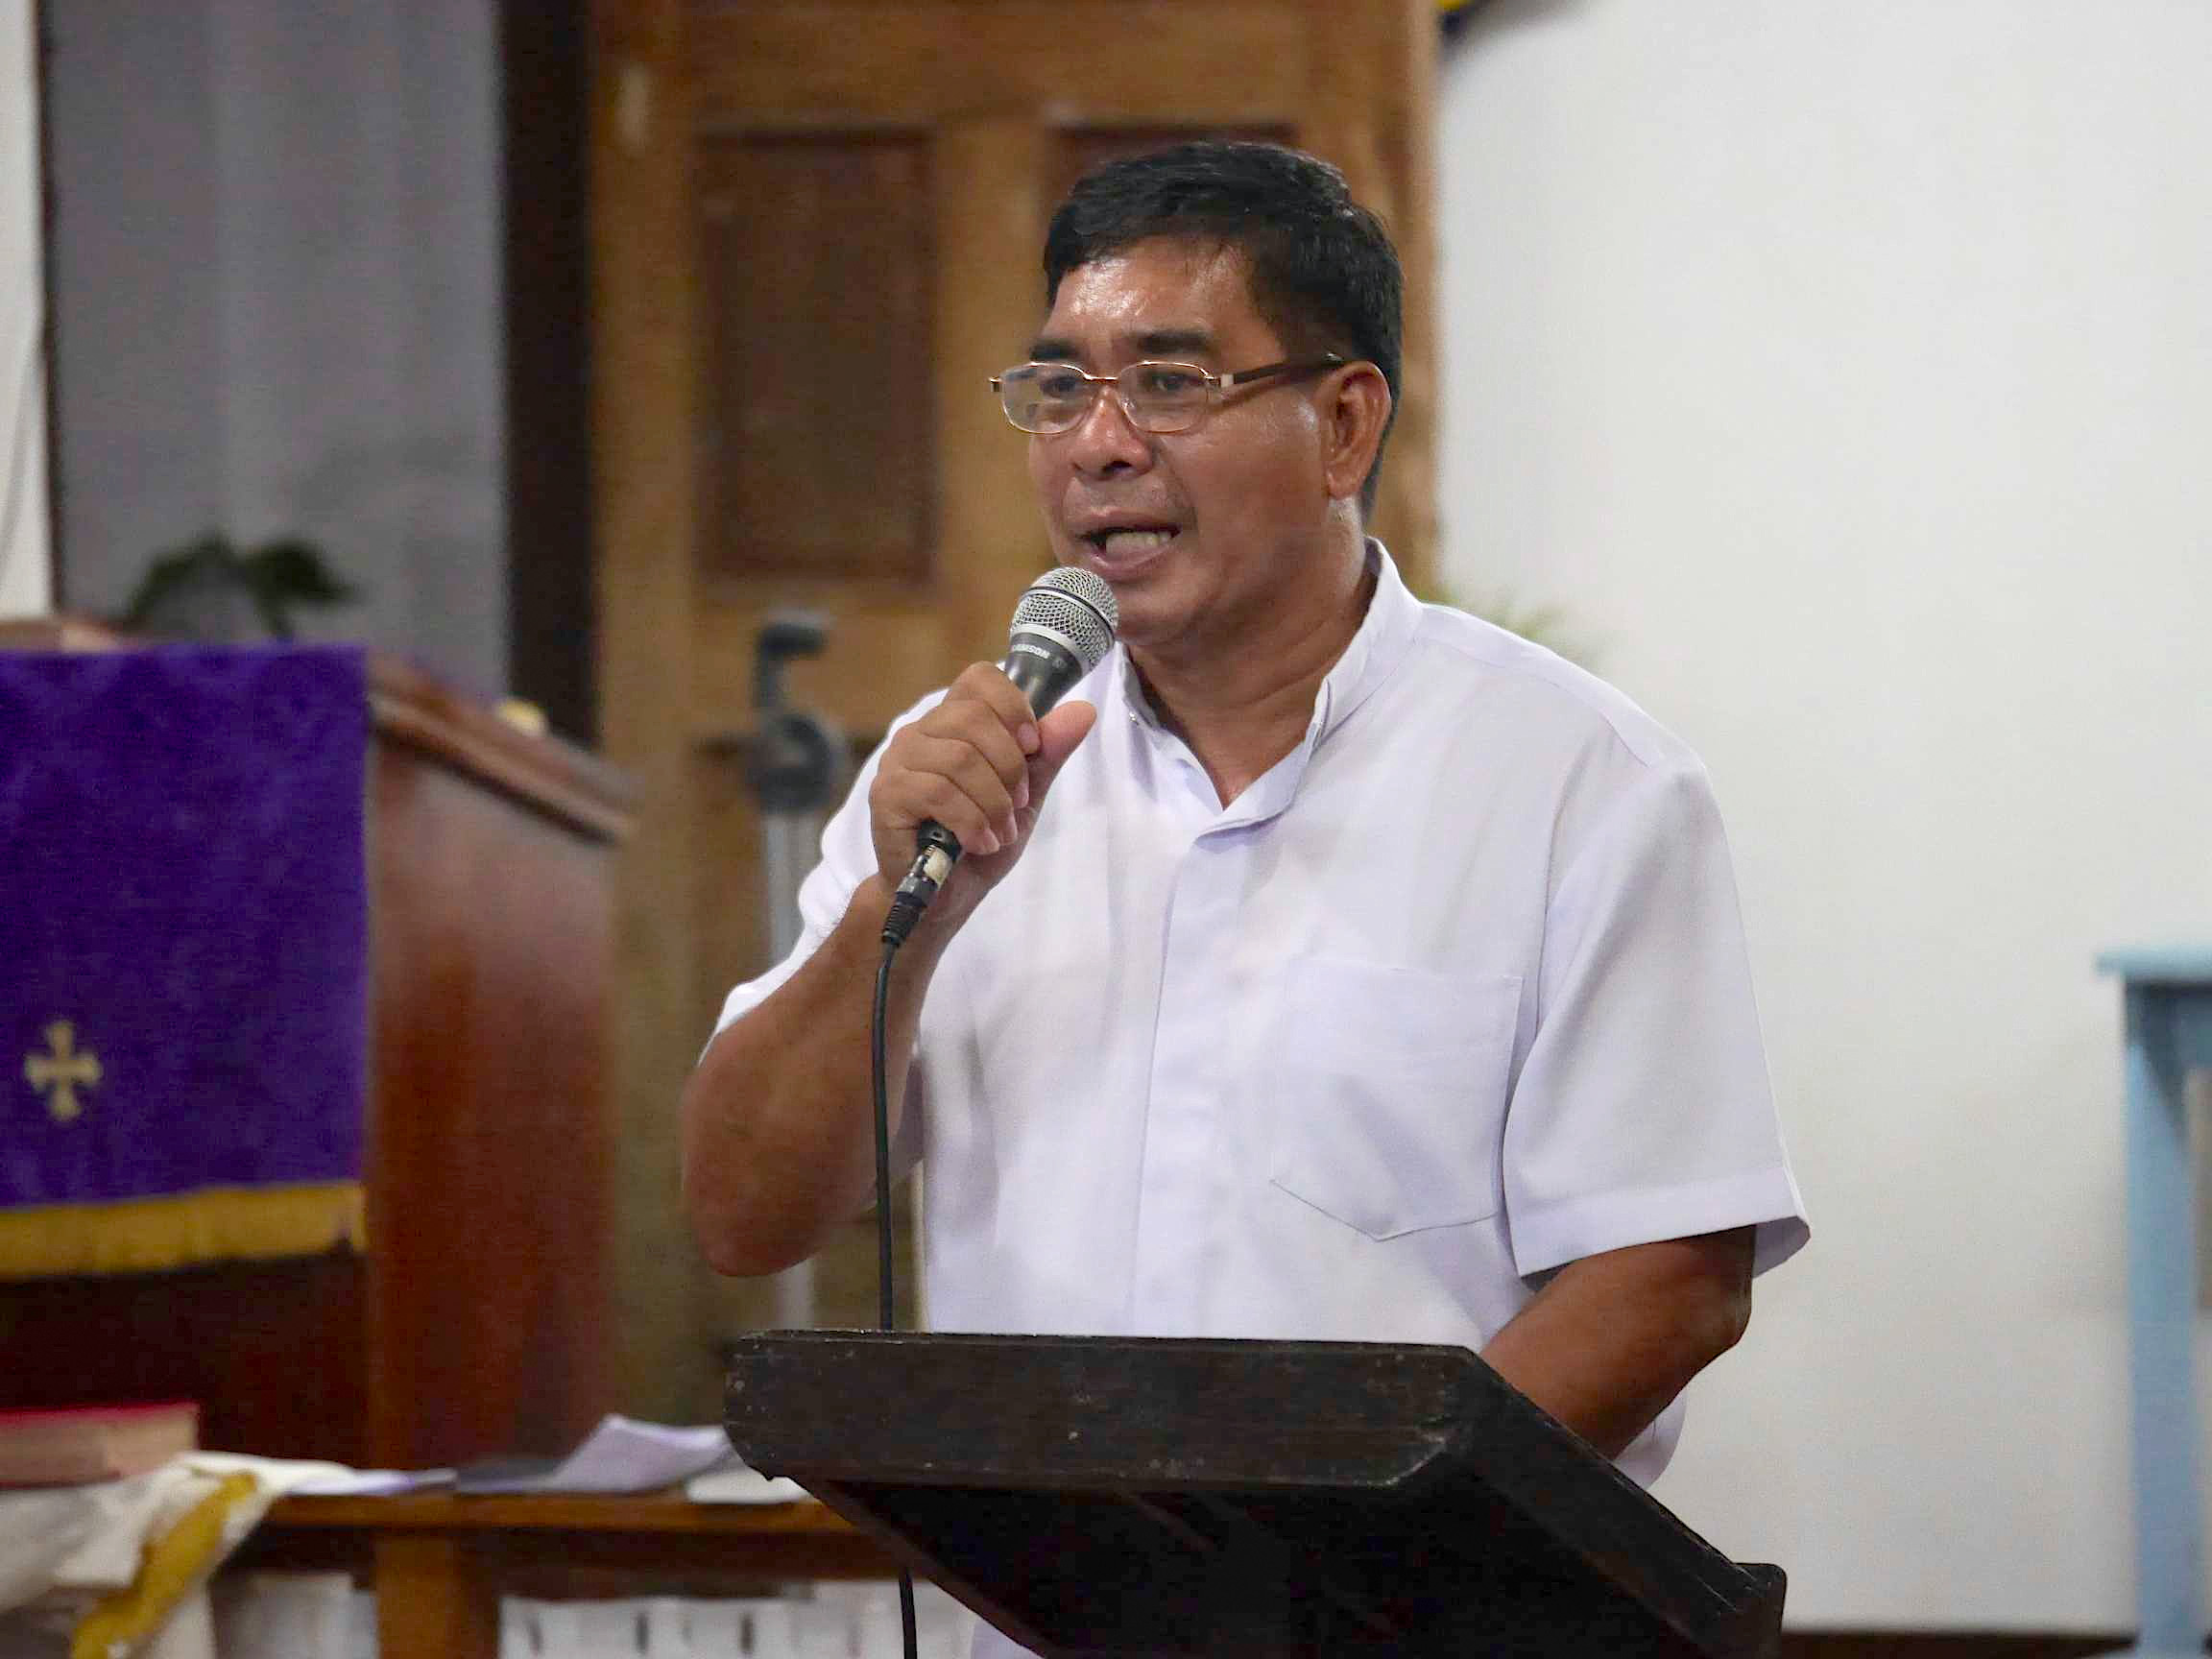 The Rev. David Cosmiano is a United Methodist district superintendent for Eastern Visayas in the Philippines, a region heavily impacted by Typhoon Haiyan last November.